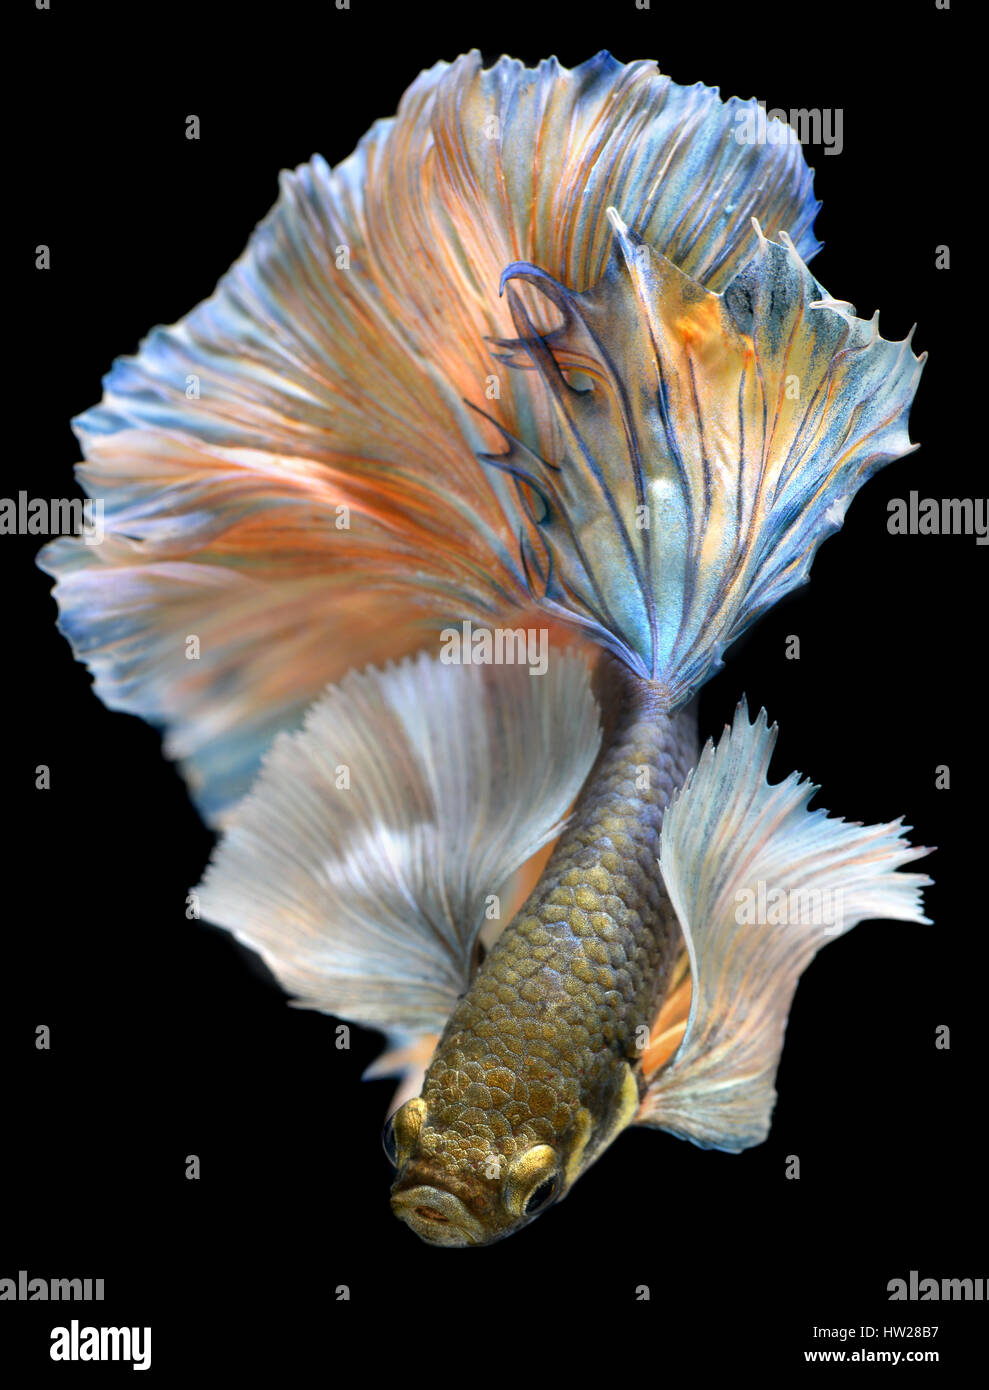 betta fish in freedom action and show the beautiful fins